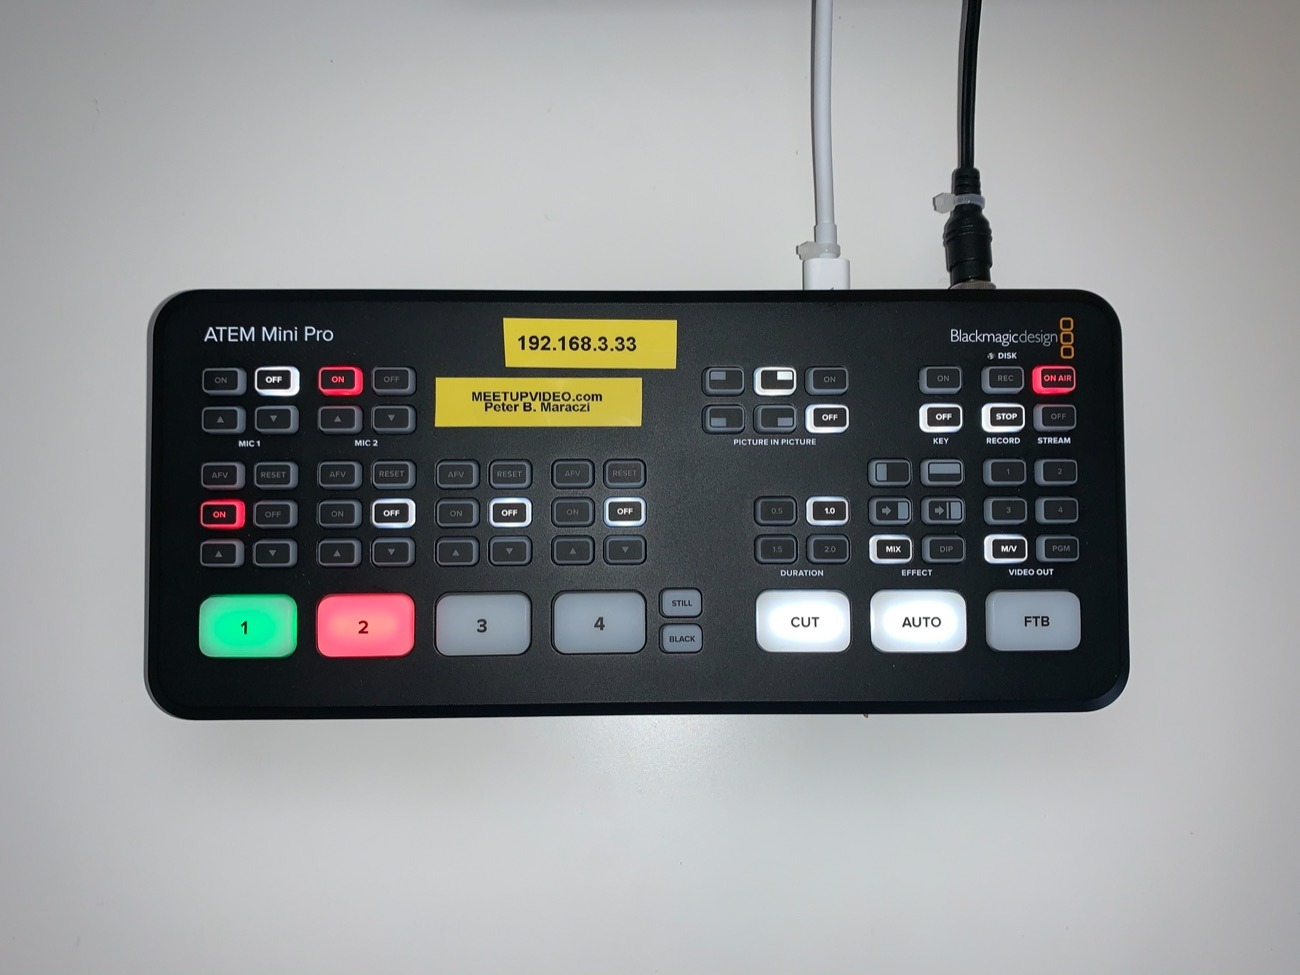 Rent Atem Mini Pro Hdmi Live Stream Switcher And Recorder Blackmagic Design In Croydon Rent For 26 00 Day 24 00 Week